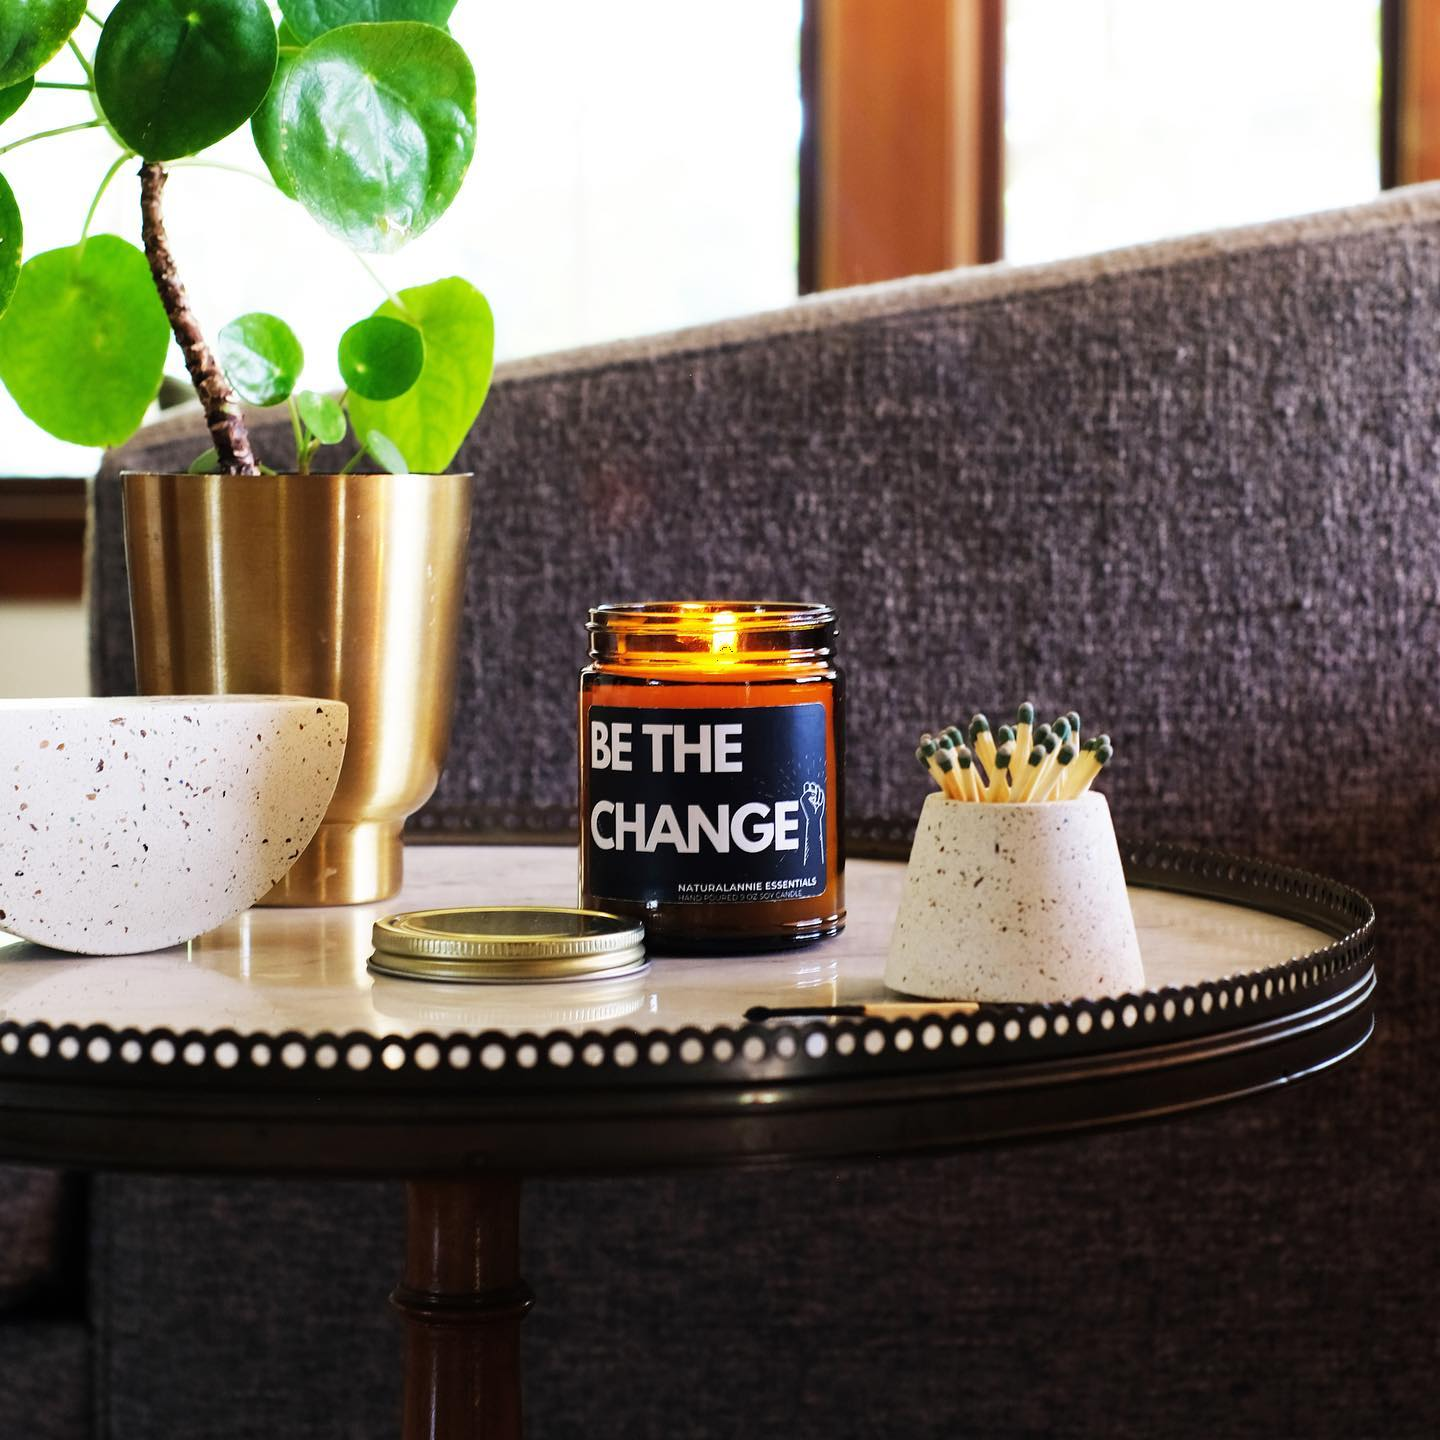 BE THE CHANGE SOY CANDLE TO SUPPORT THE BLACK LIVES MATTER MOVEMENT